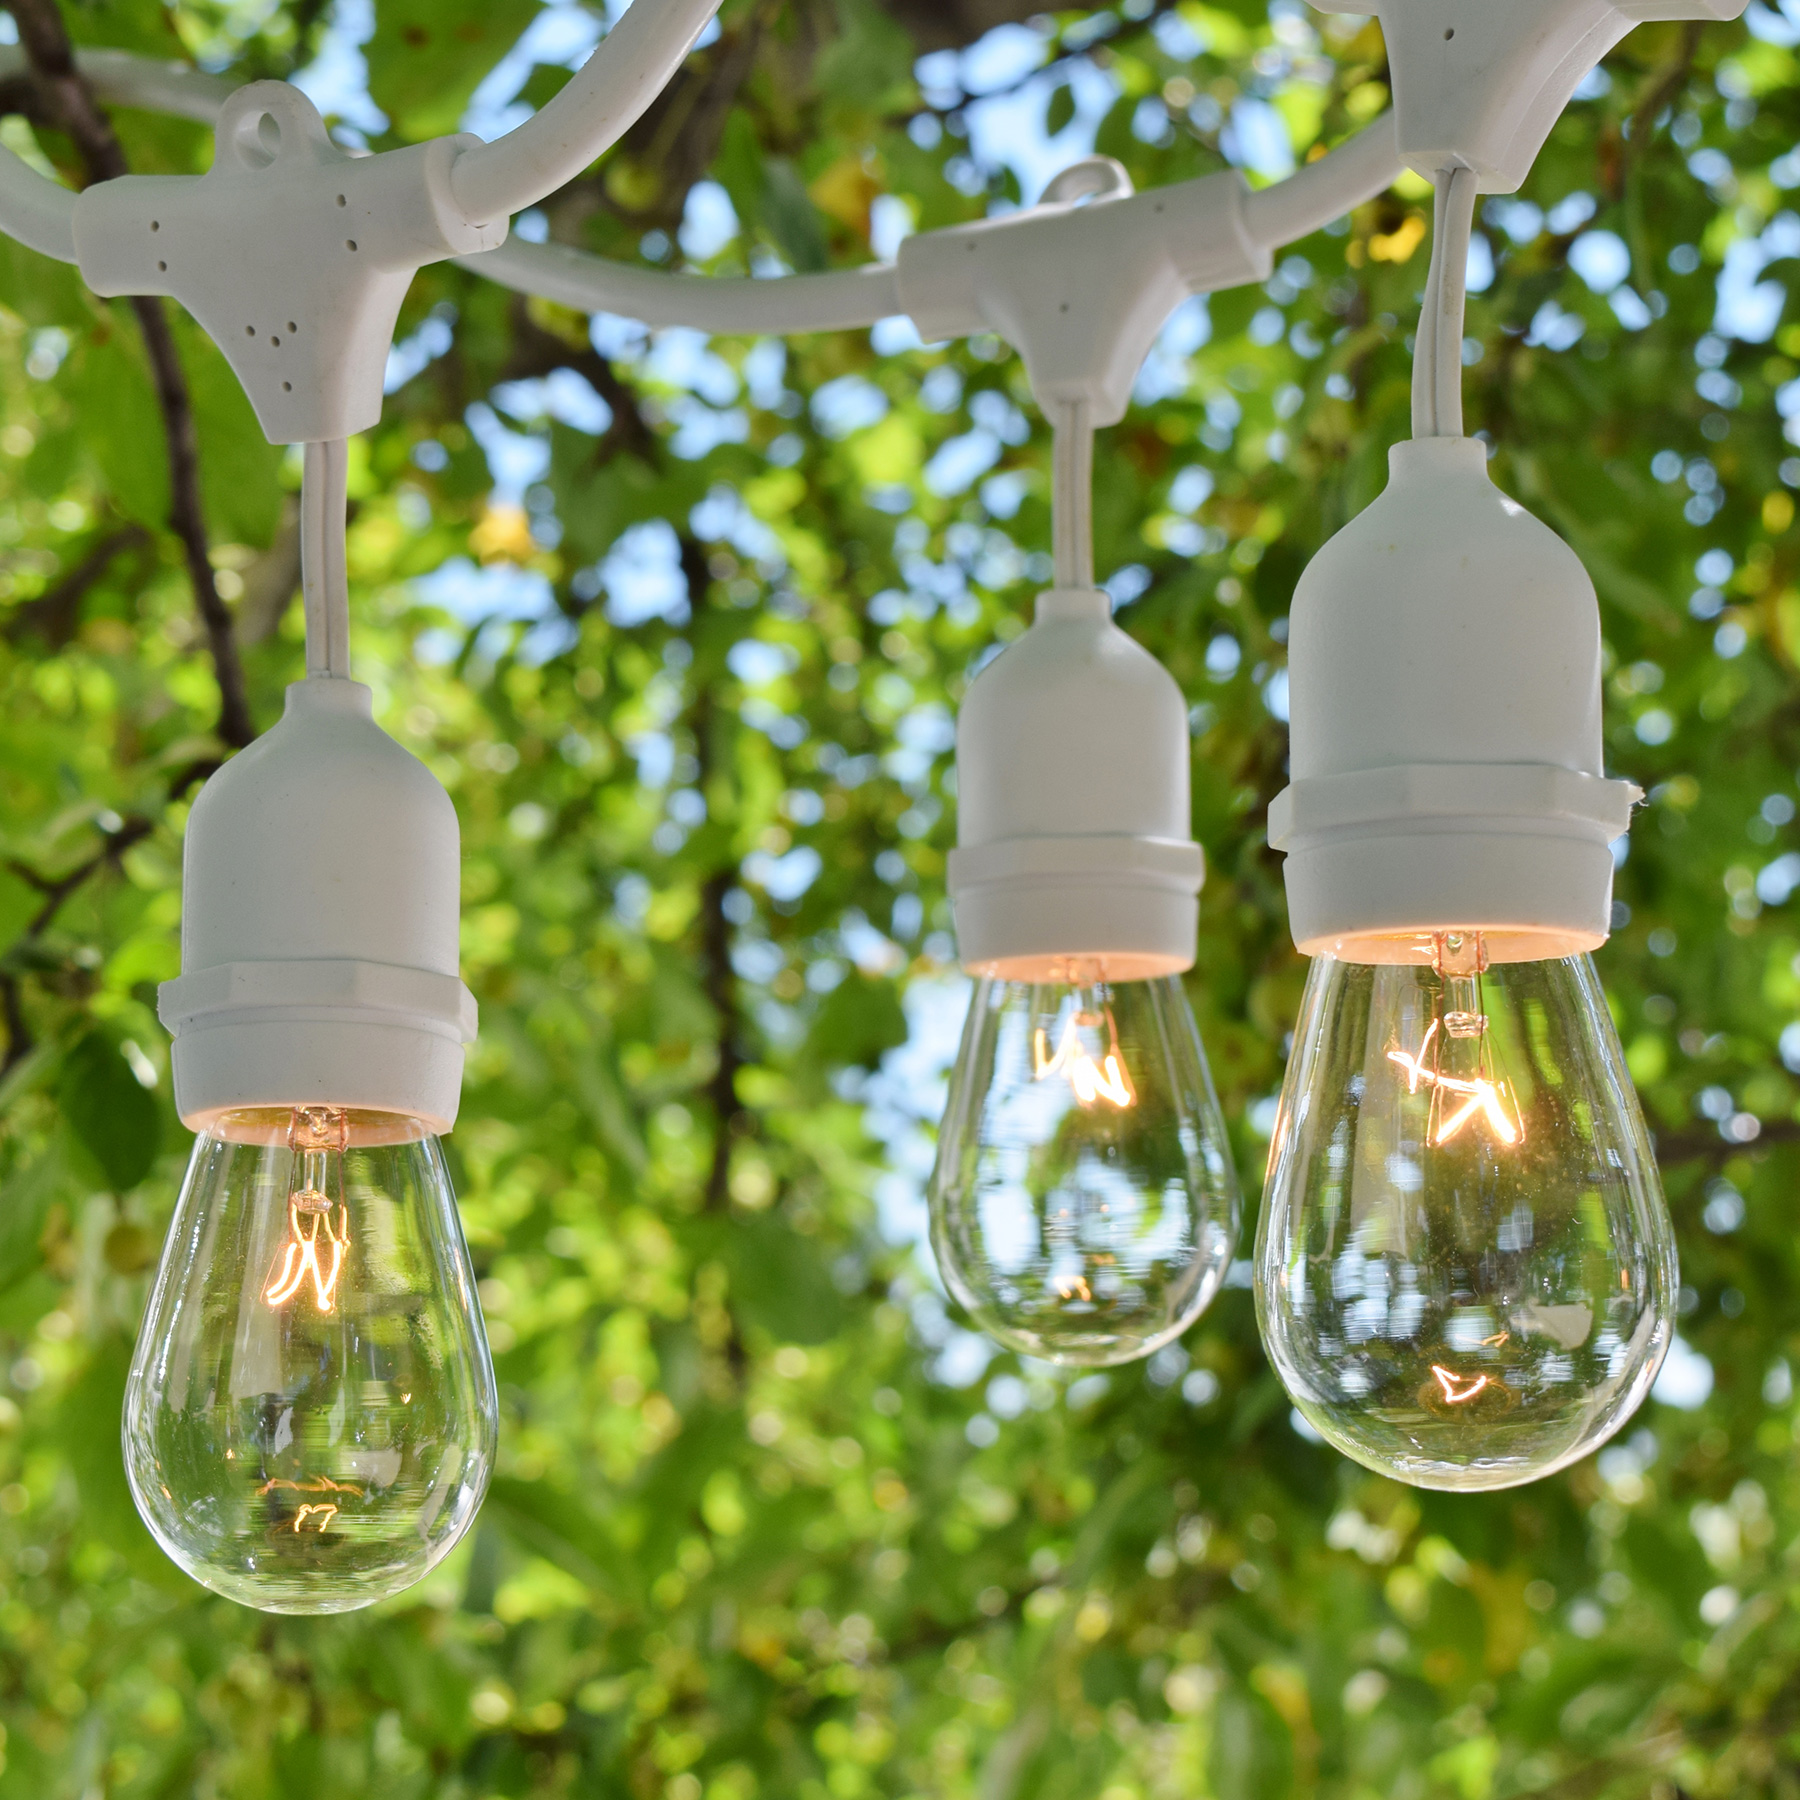 Outdoor String Lights Homebase : White Outdoor String Lights - 48 OogaLights Pro Series HD